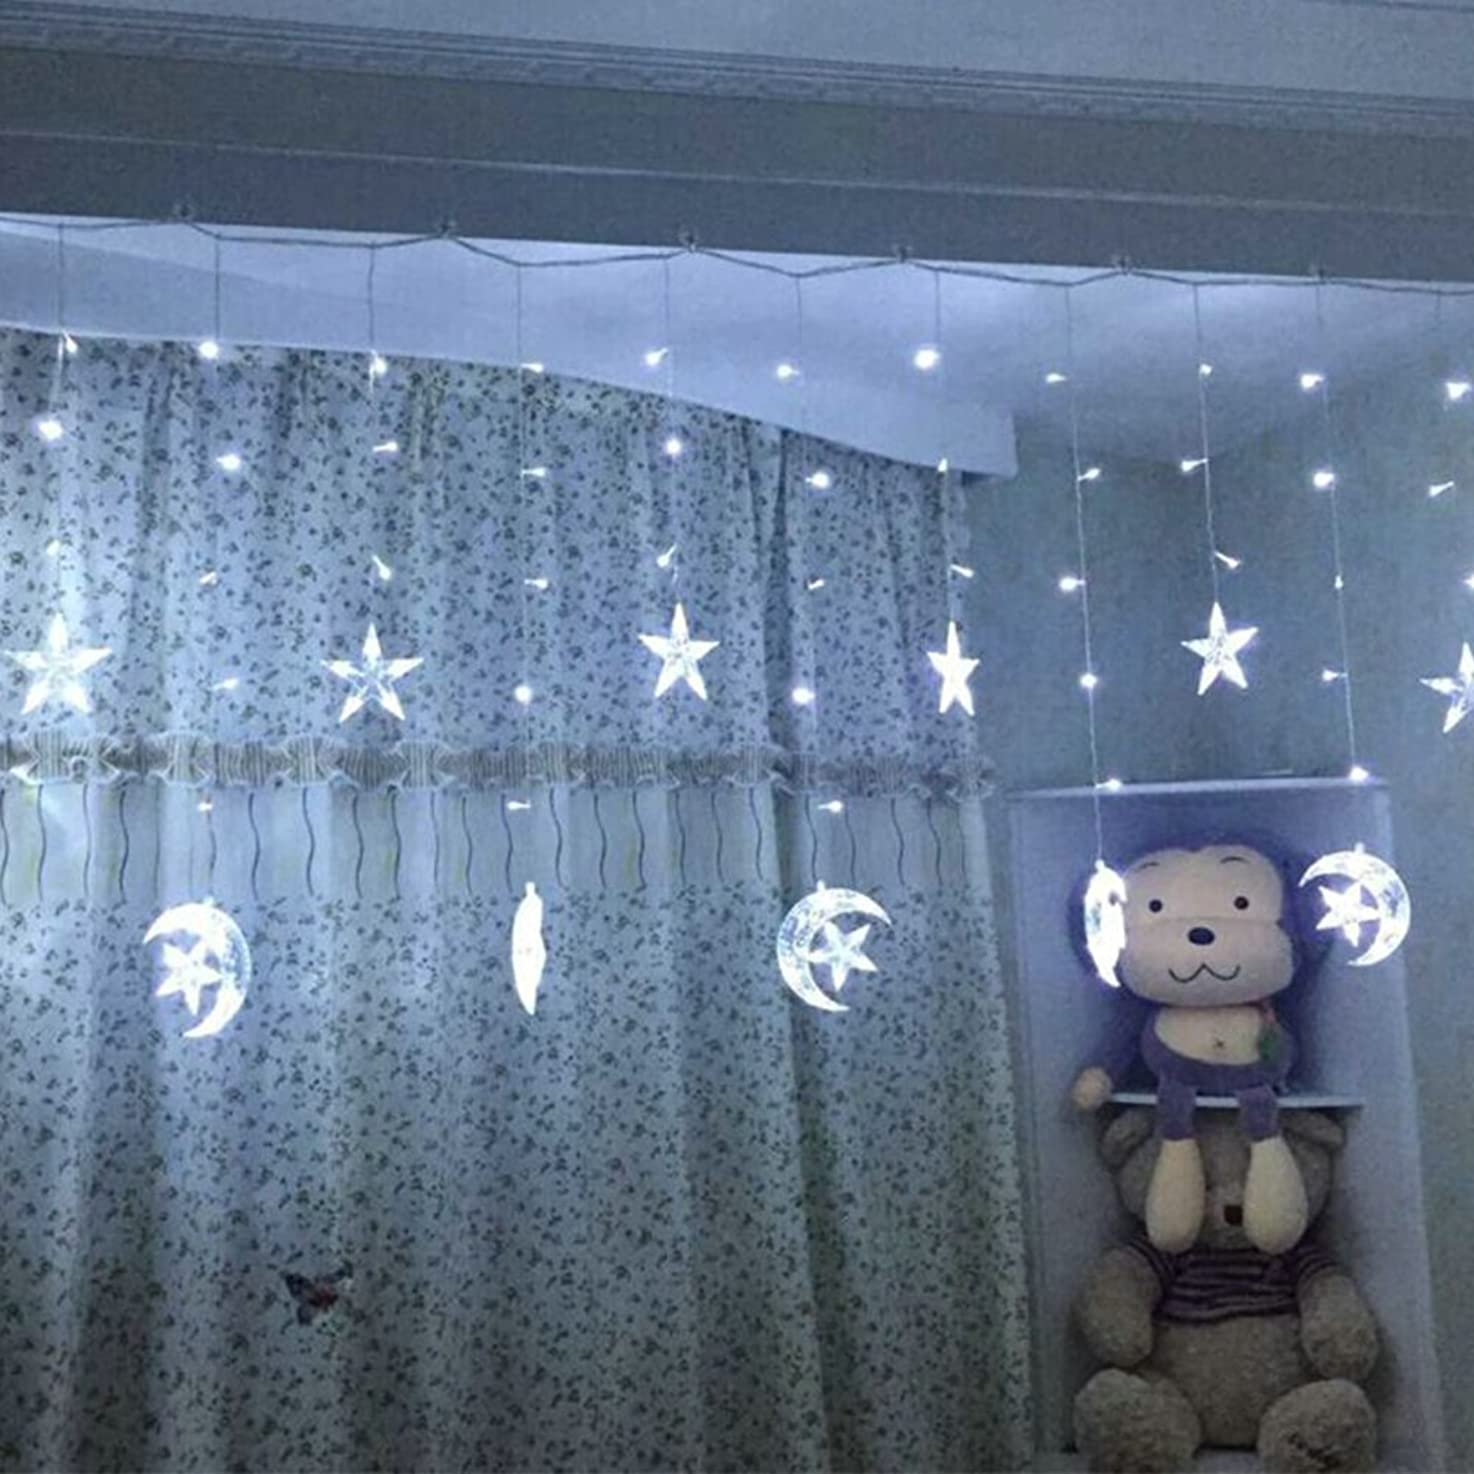 Led Star Curtain Lights, Moon Star String Light 138 LEDs 250CM Length with 8 Modes Plug in Fairy Lights Christmas Window Curtains Light for Party,Wedding,Holiday, Home Decoration (White)